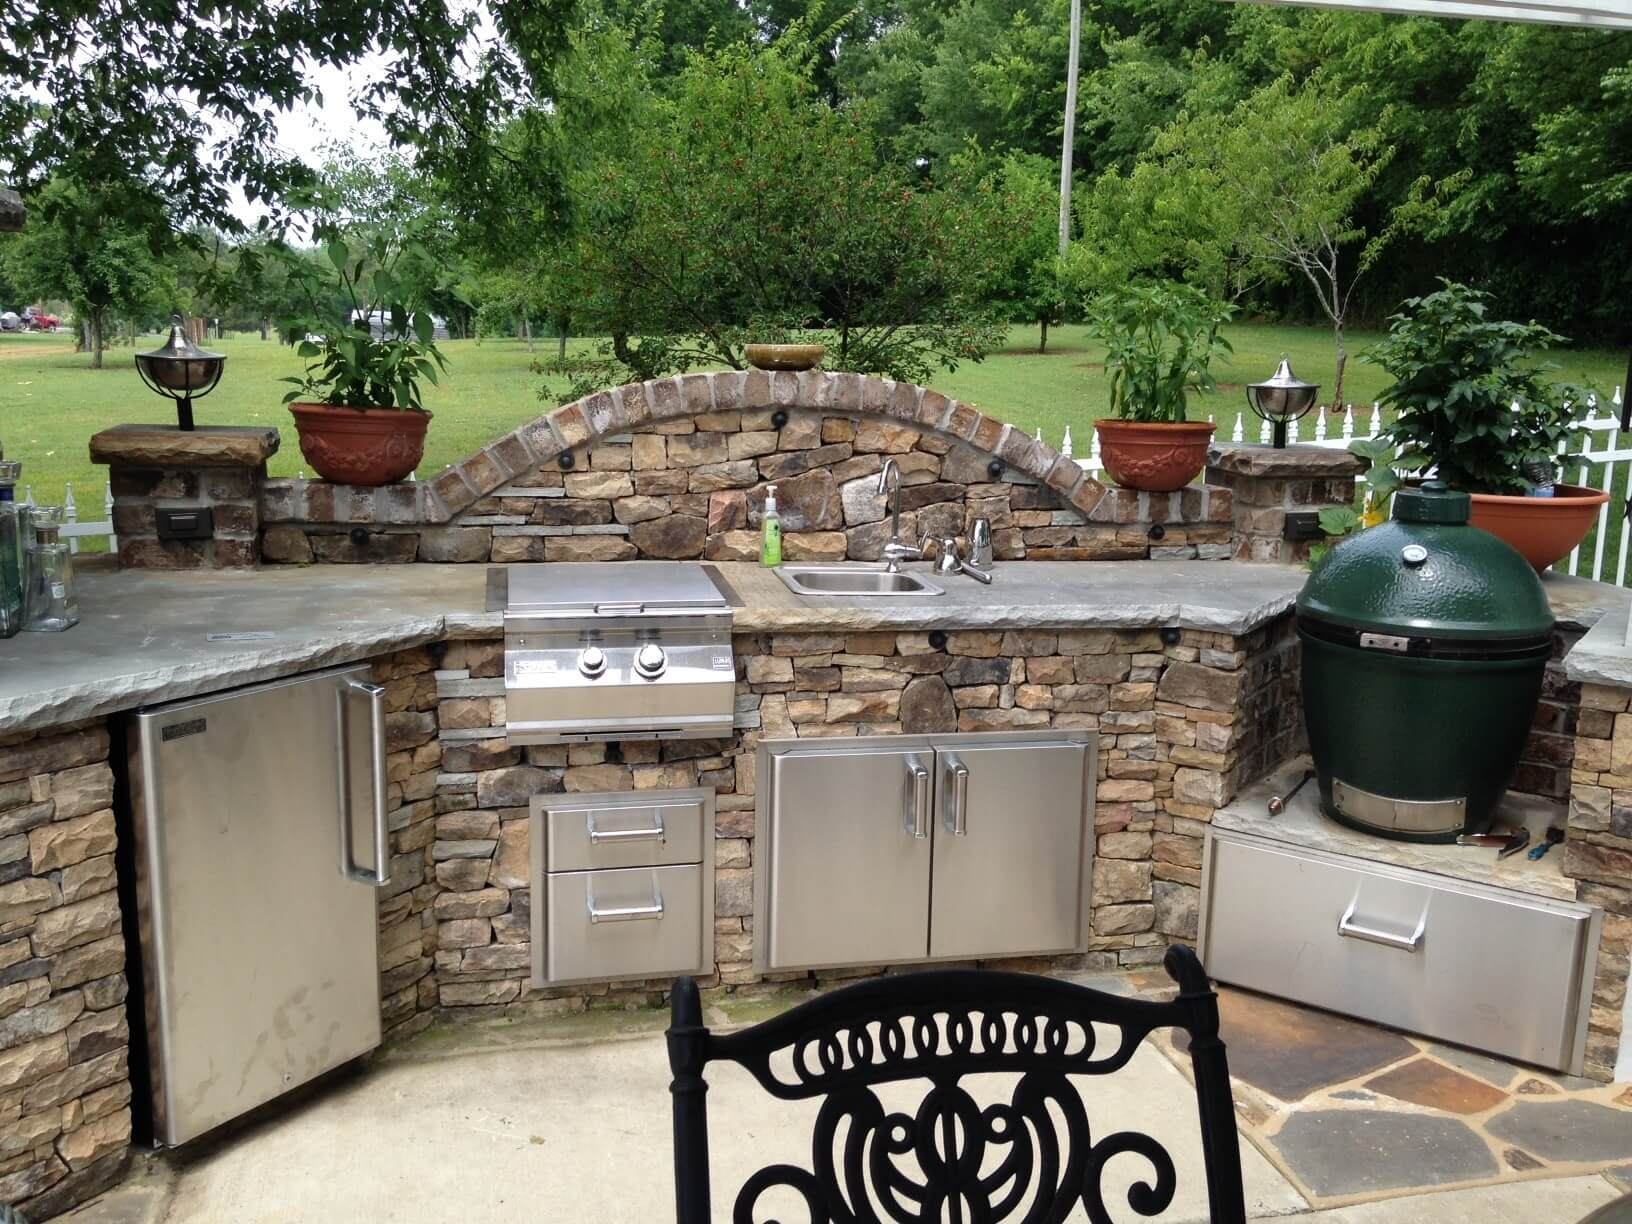 27 Best Outdoor Kitchen Ideas and Designs for 2019 Antique Outdoor Kitchen Ideas on used outdoor kitchens, wooden outdoor kitchens, mexico outdoor kitchens, old outdoor kitchens, chinese outdoor kitchens, california outdoor kitchens, handmade outdoor kitchens, upcycled outdoor kitchens, grey outdoor kitchens, historic outdoor kitchens, bohemian outdoor kitchens, industrial outdoor kitchens, yurt outdoor kitchens, ranch outdoor kitchens, chrome outdoor kitchens, farmhouse outdoor kitchens, commercial outdoor kitchens, italy outdoor kitchens, farm outdoor kitchens, china outdoor kitchens,